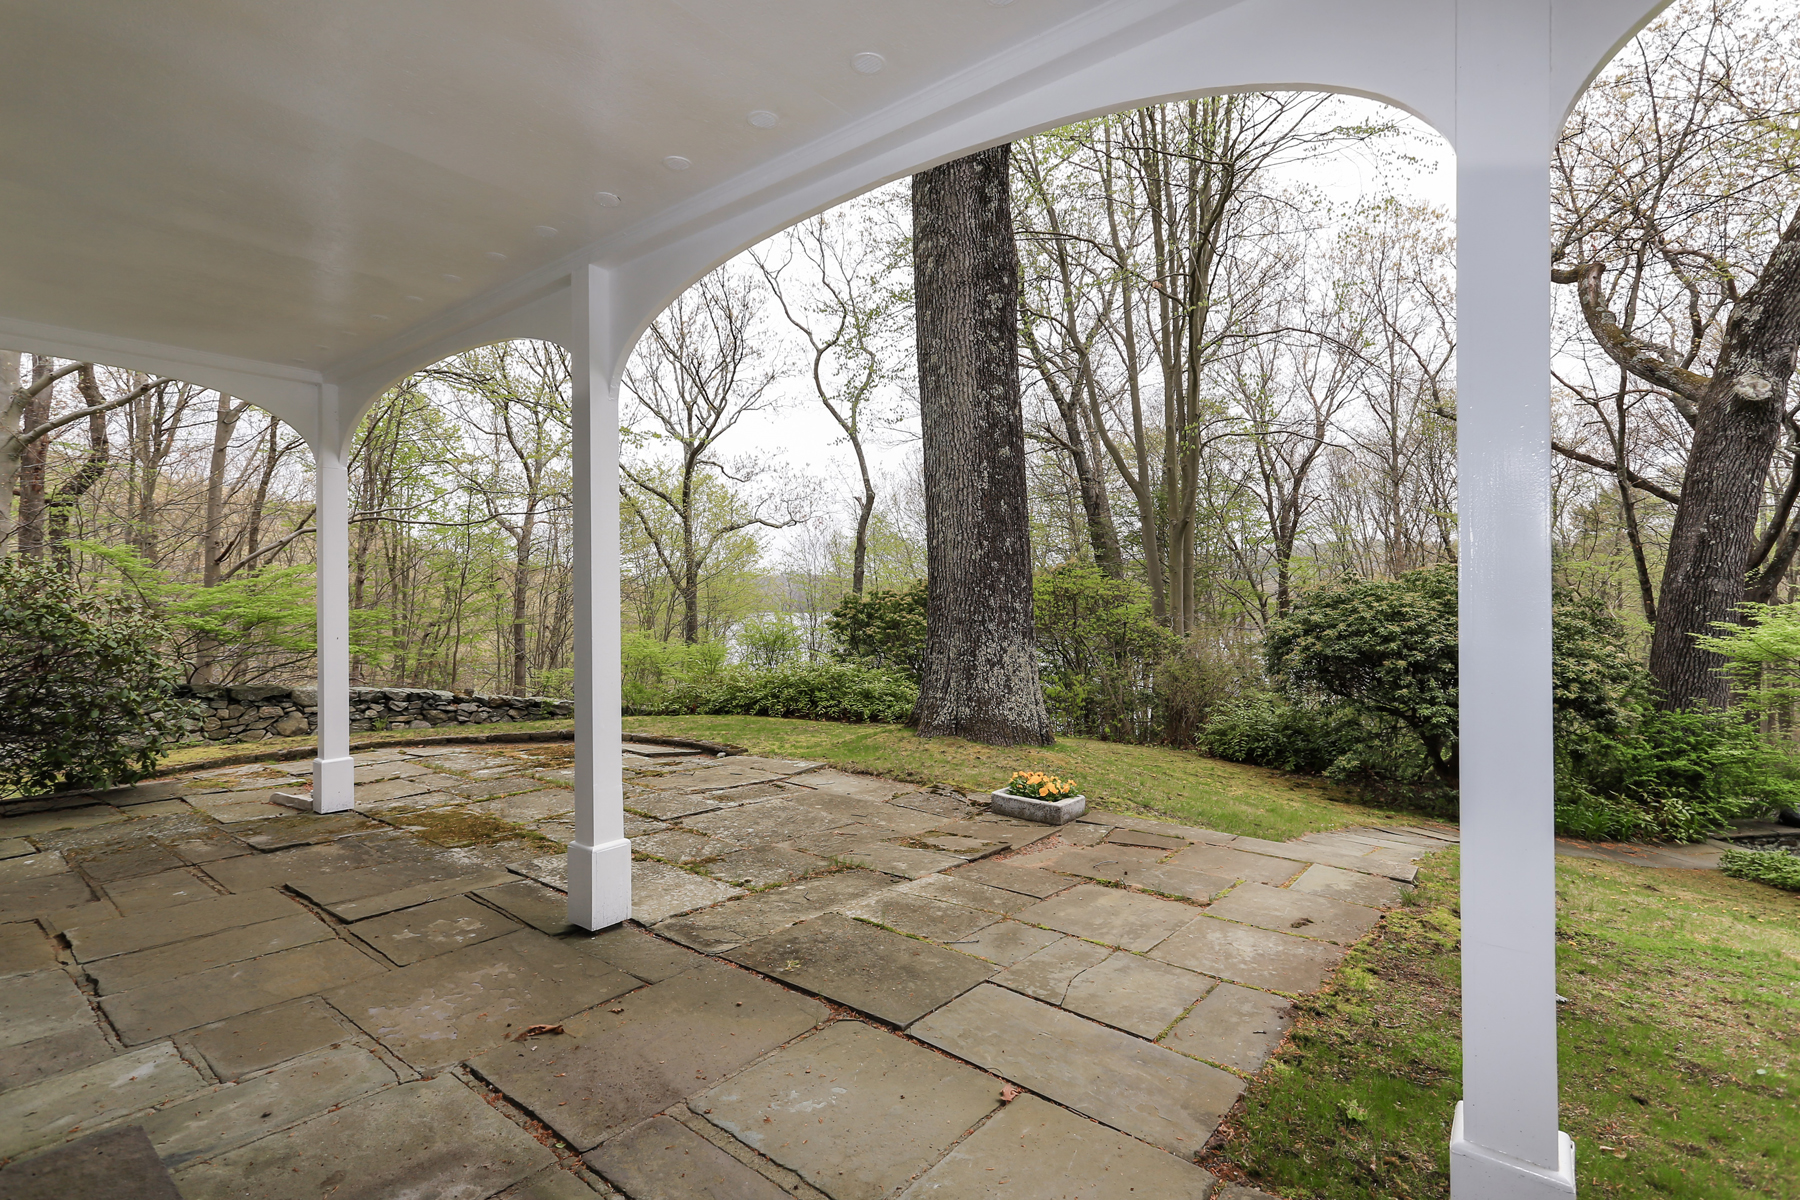 Additional photo for property listing at Reservoir Views 199 Upper Hook Road Katonah, Nueva York 10536 Estados Unidos